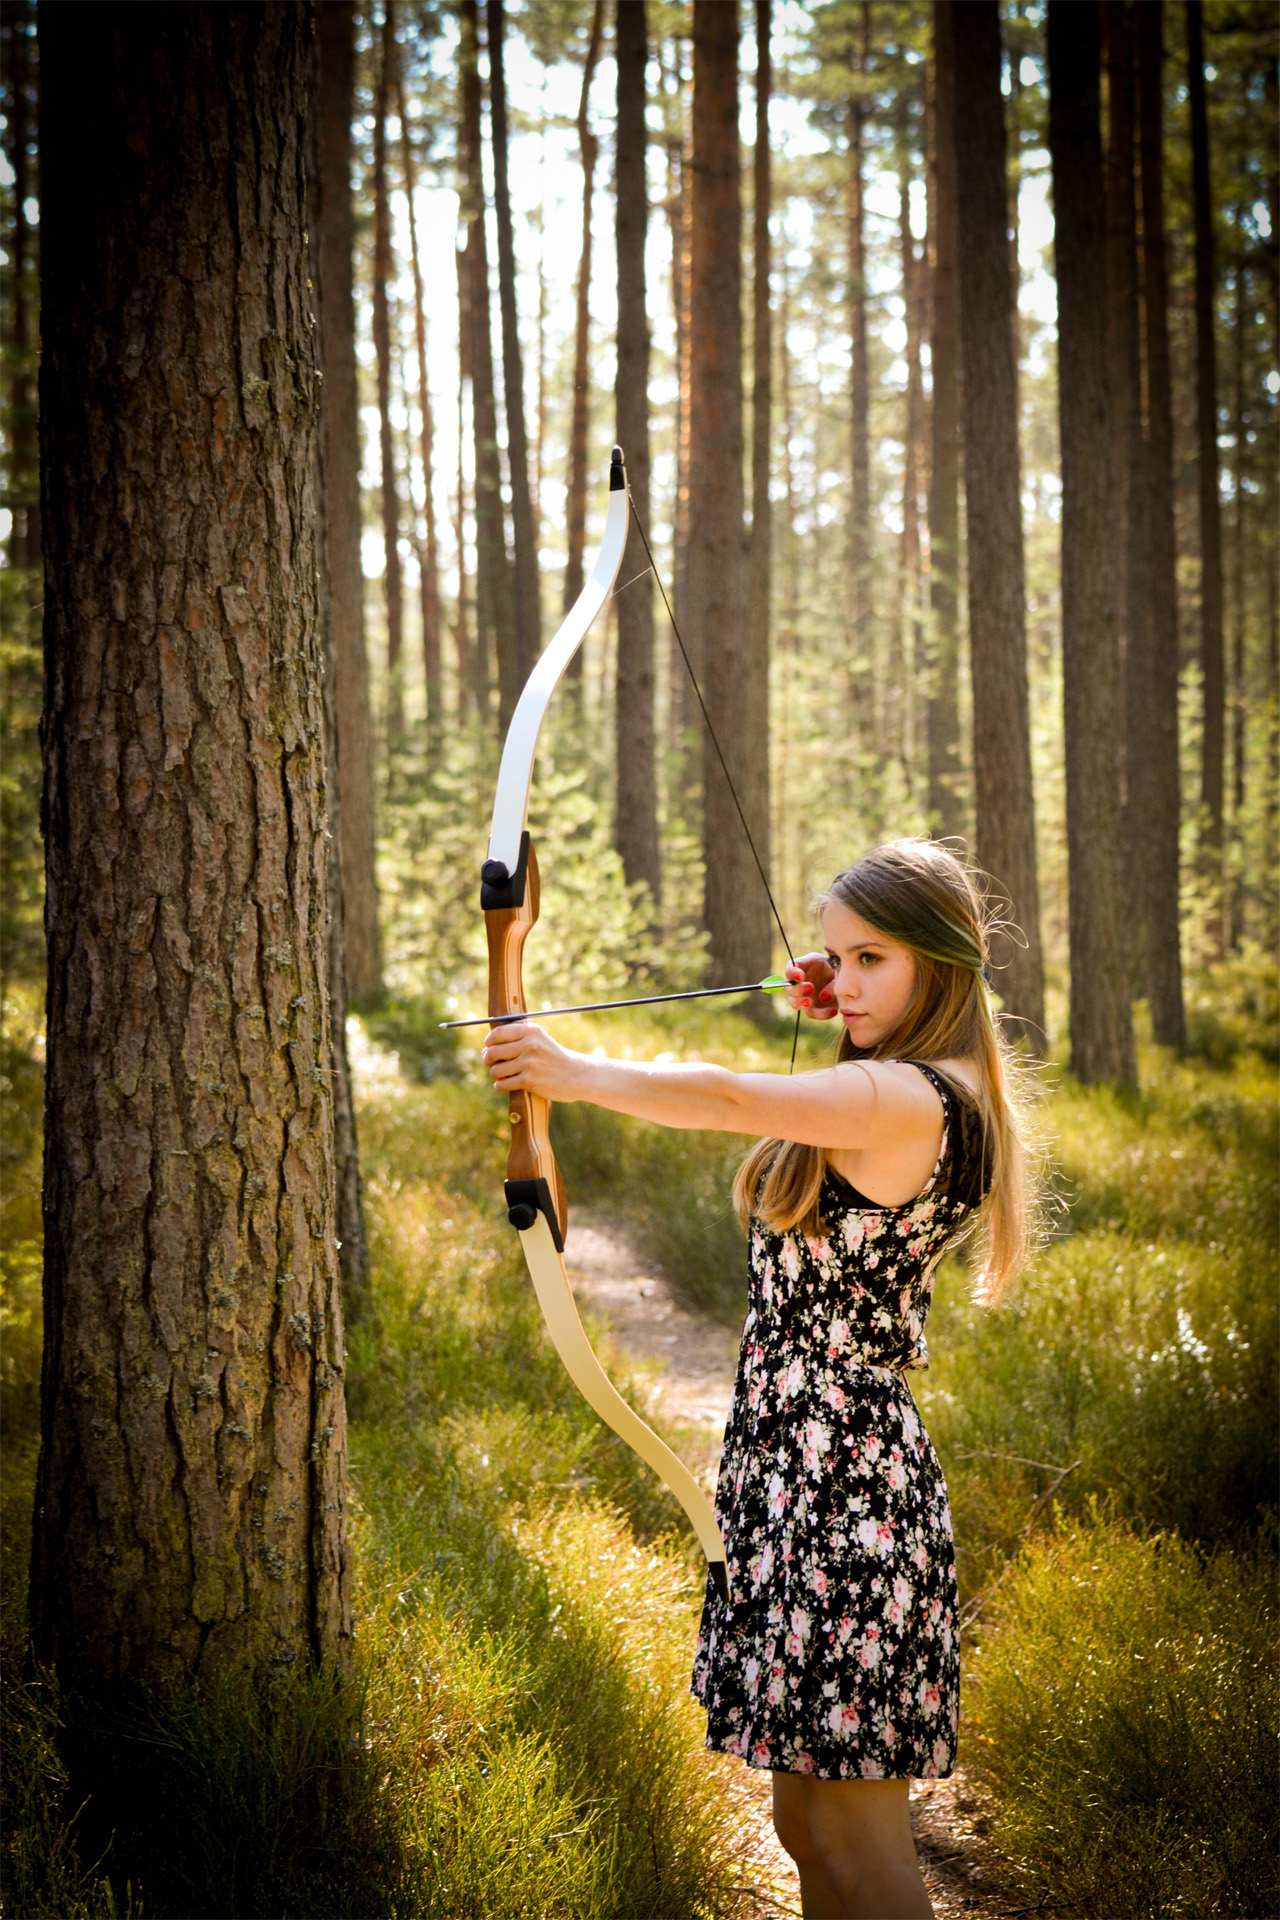 She made record on long distance archery